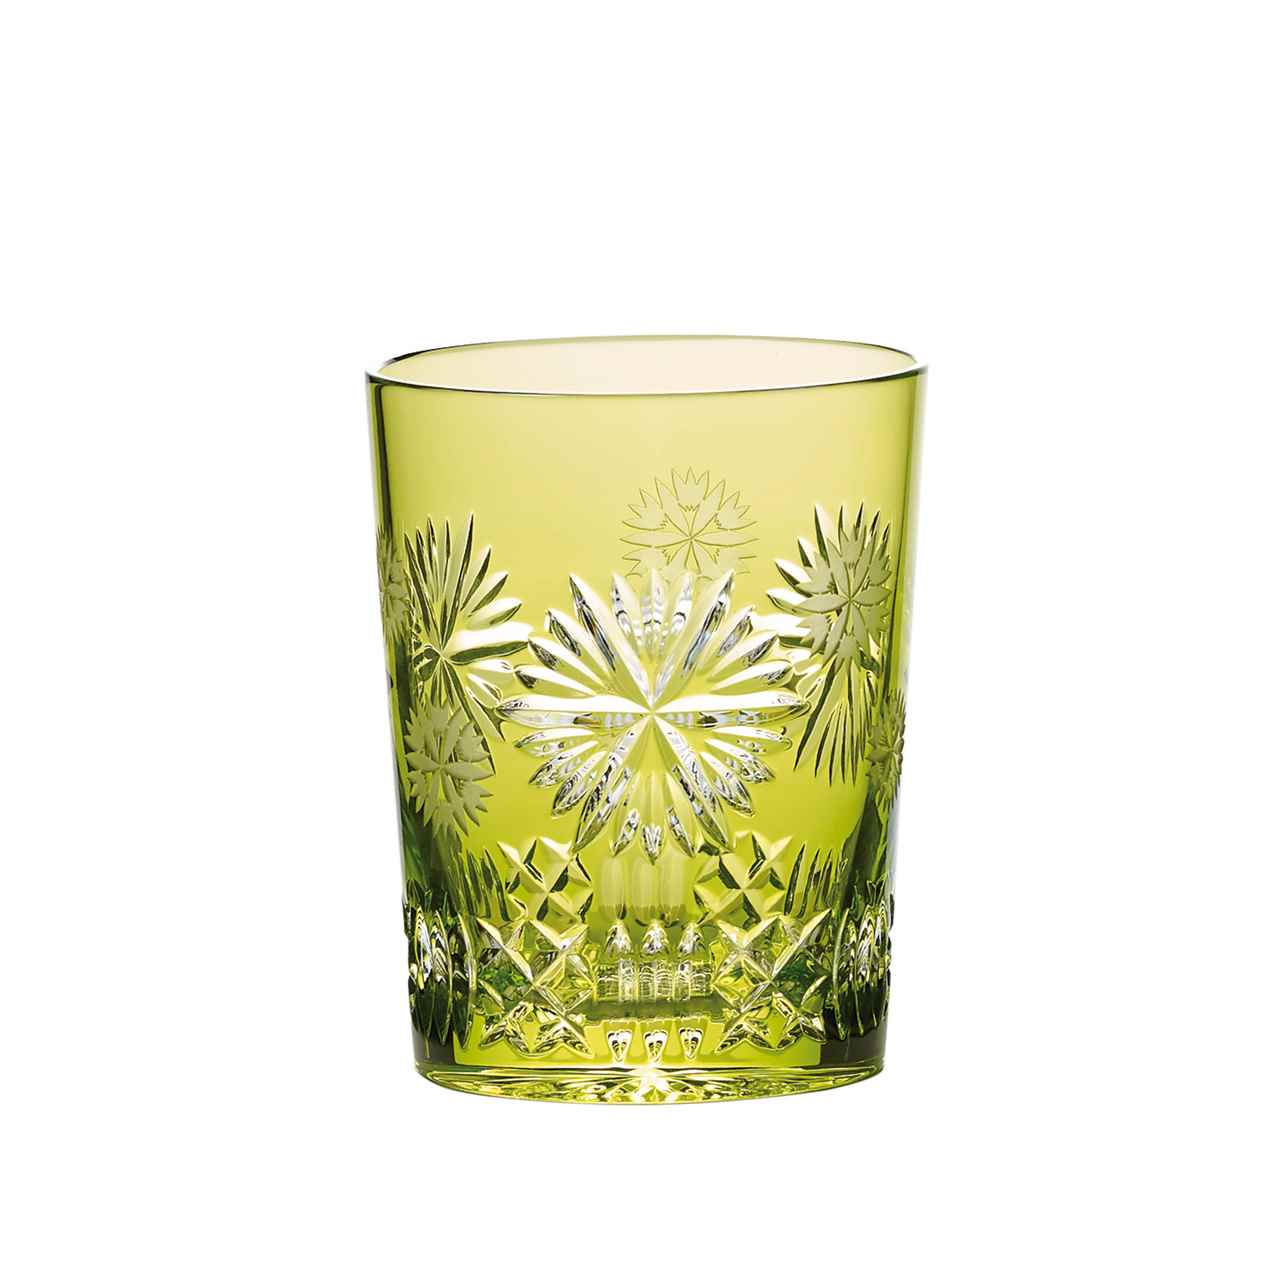 2019 Snowflake Wishes Prosperity Prestige Edition Double Old Fashioned Lime Tumbler